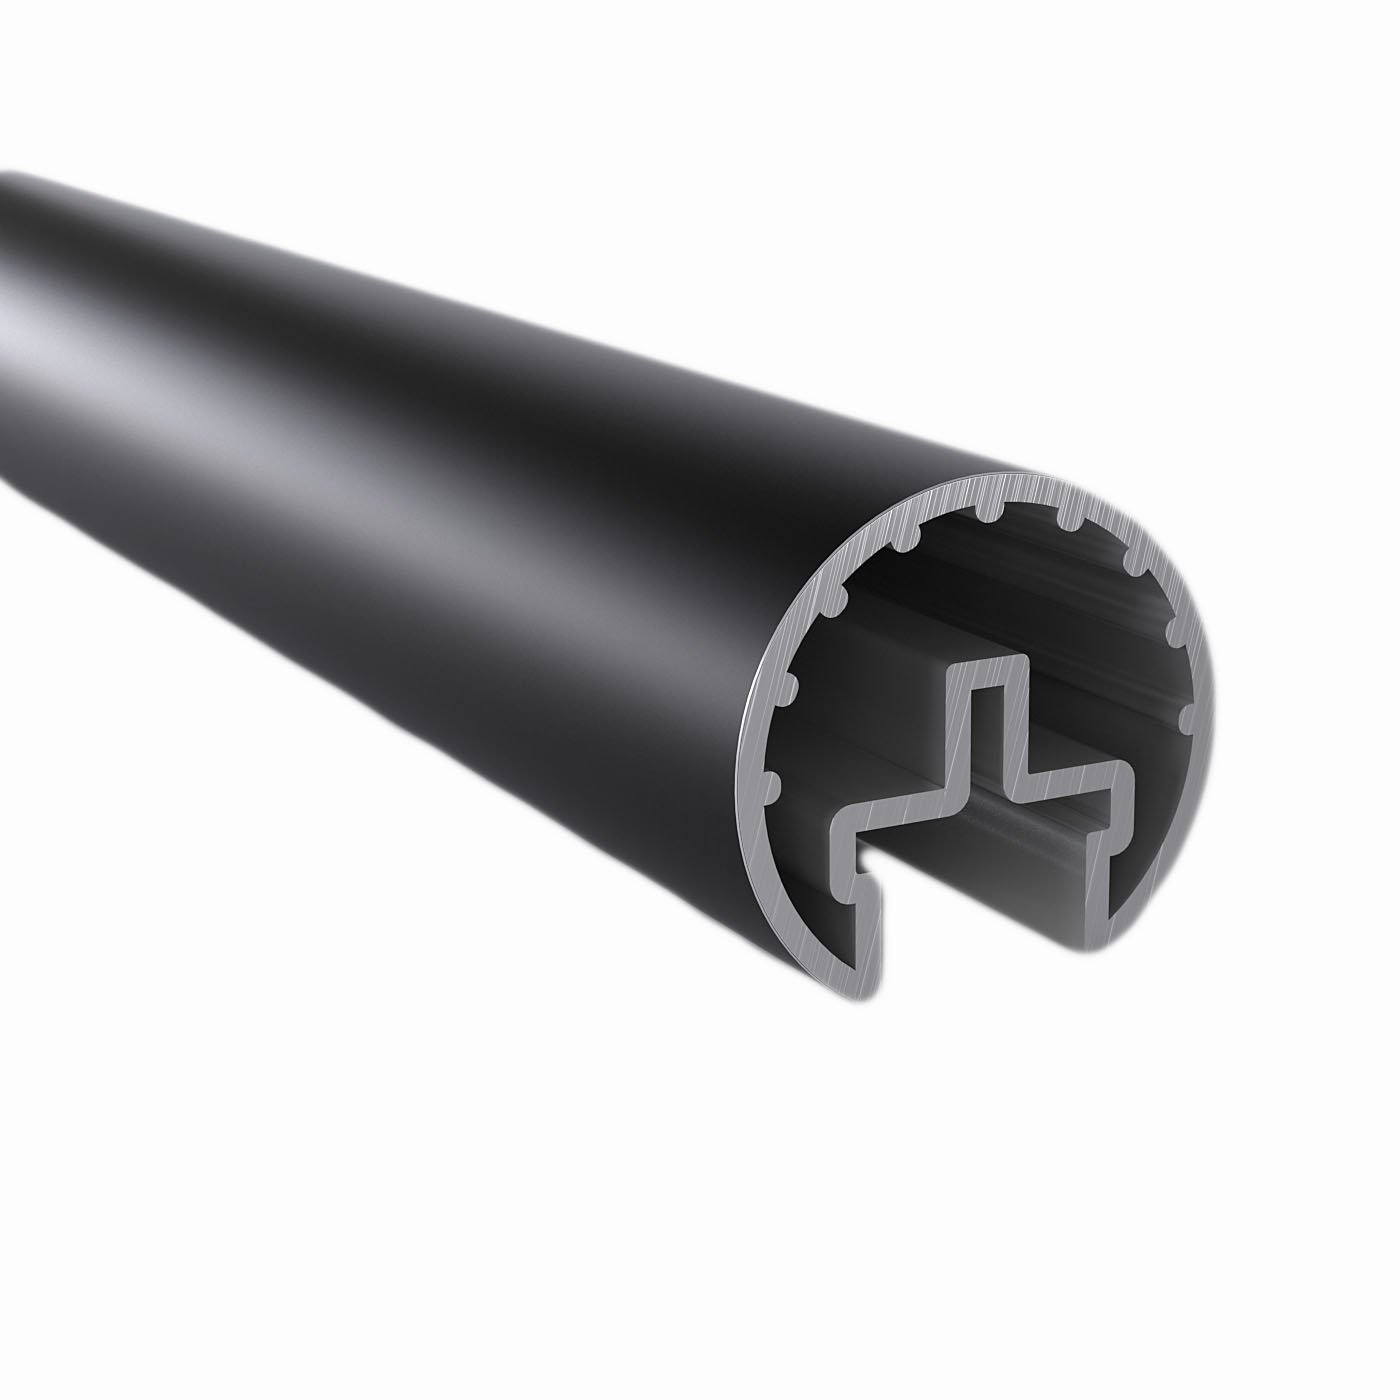 2 ft. Handrail Tubing, 1.6'' Round, Satin Black Anodized Aluminum, for Promenaid Handrail System Only